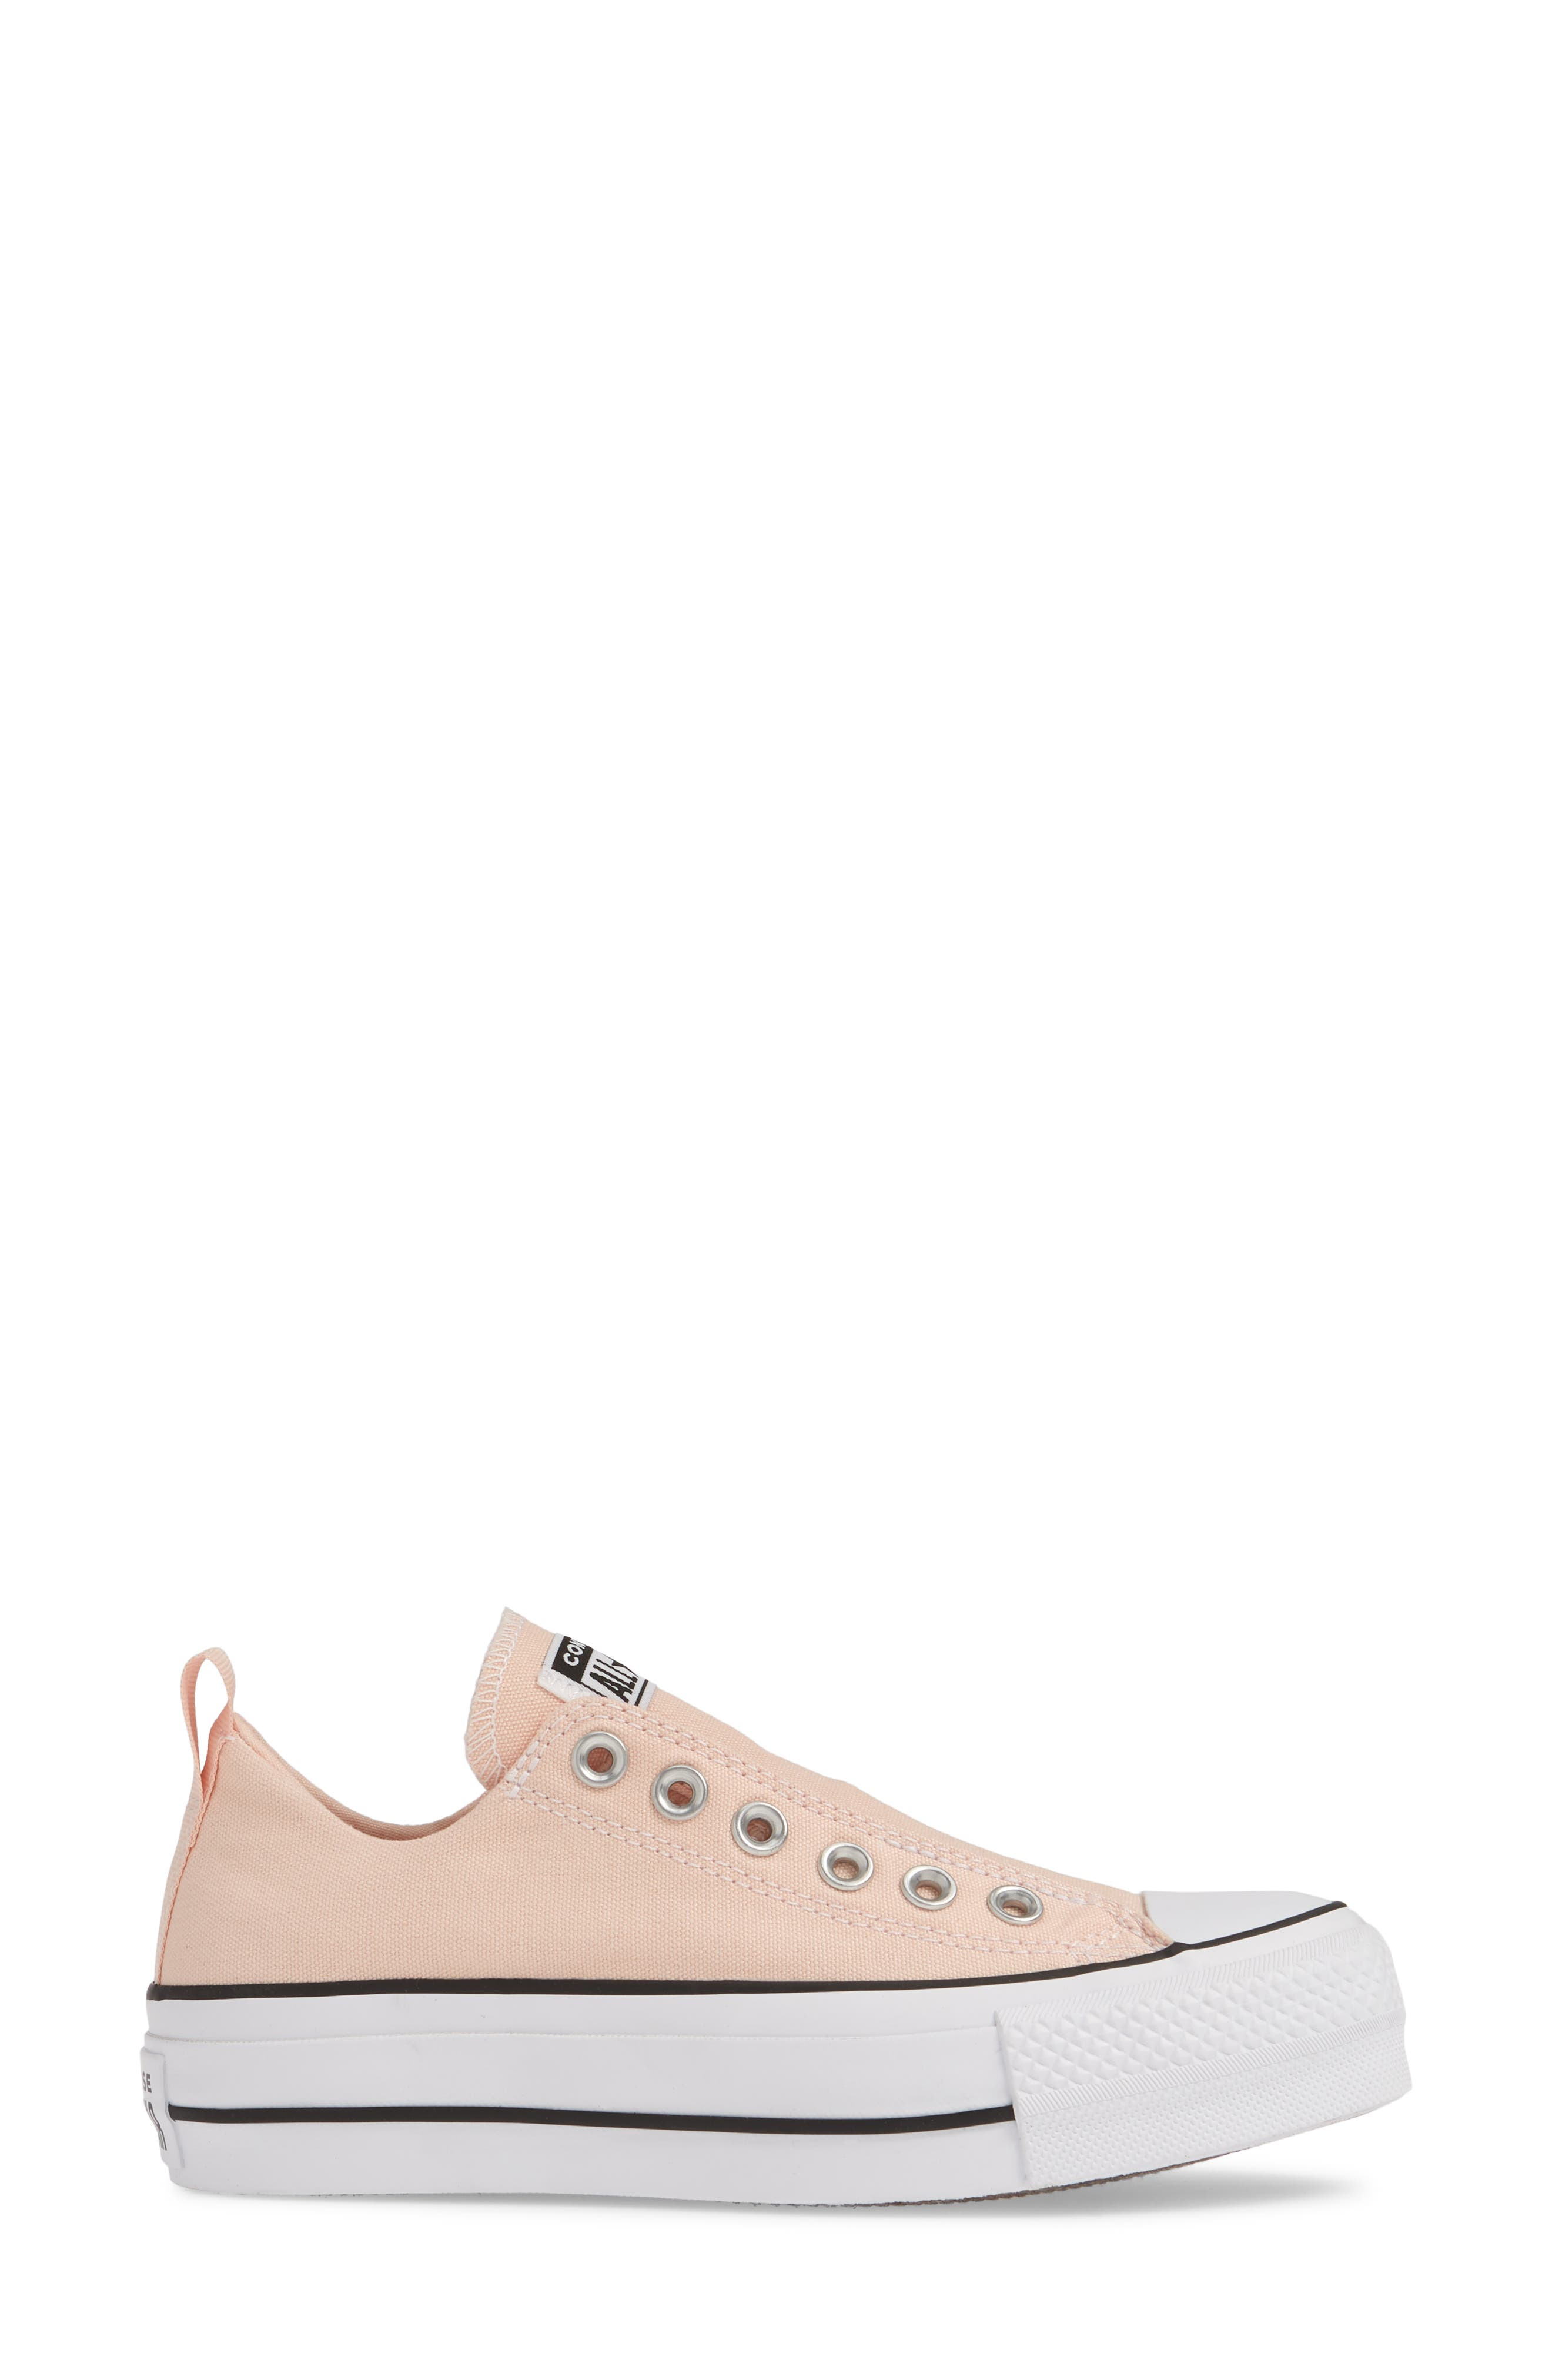 CONVERSE, Chuck Taylor<sup>®</sup> All Star<sup>®</sup> Lift Slip-On Sneaker, Alternate thumbnail 3, color, WASHED CORAL/ WHITE/ BLACK